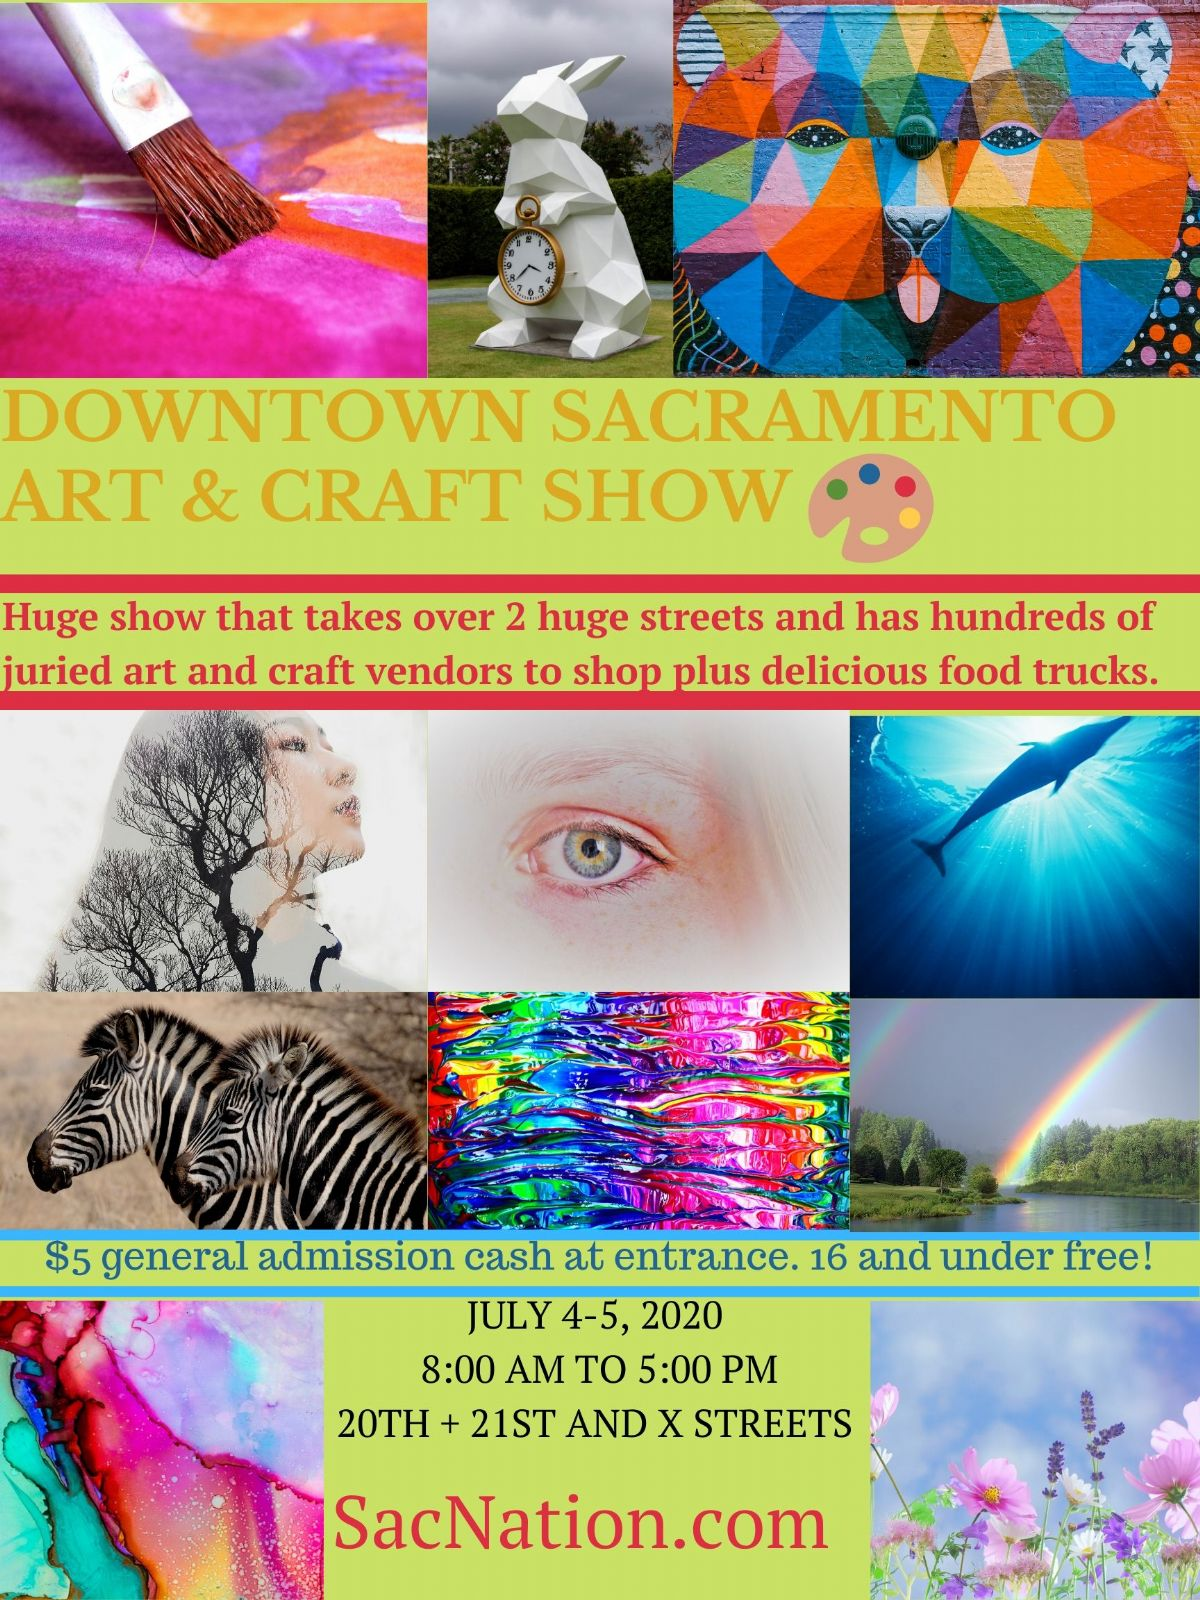 The Downtown Sacramento Art And Craft Show